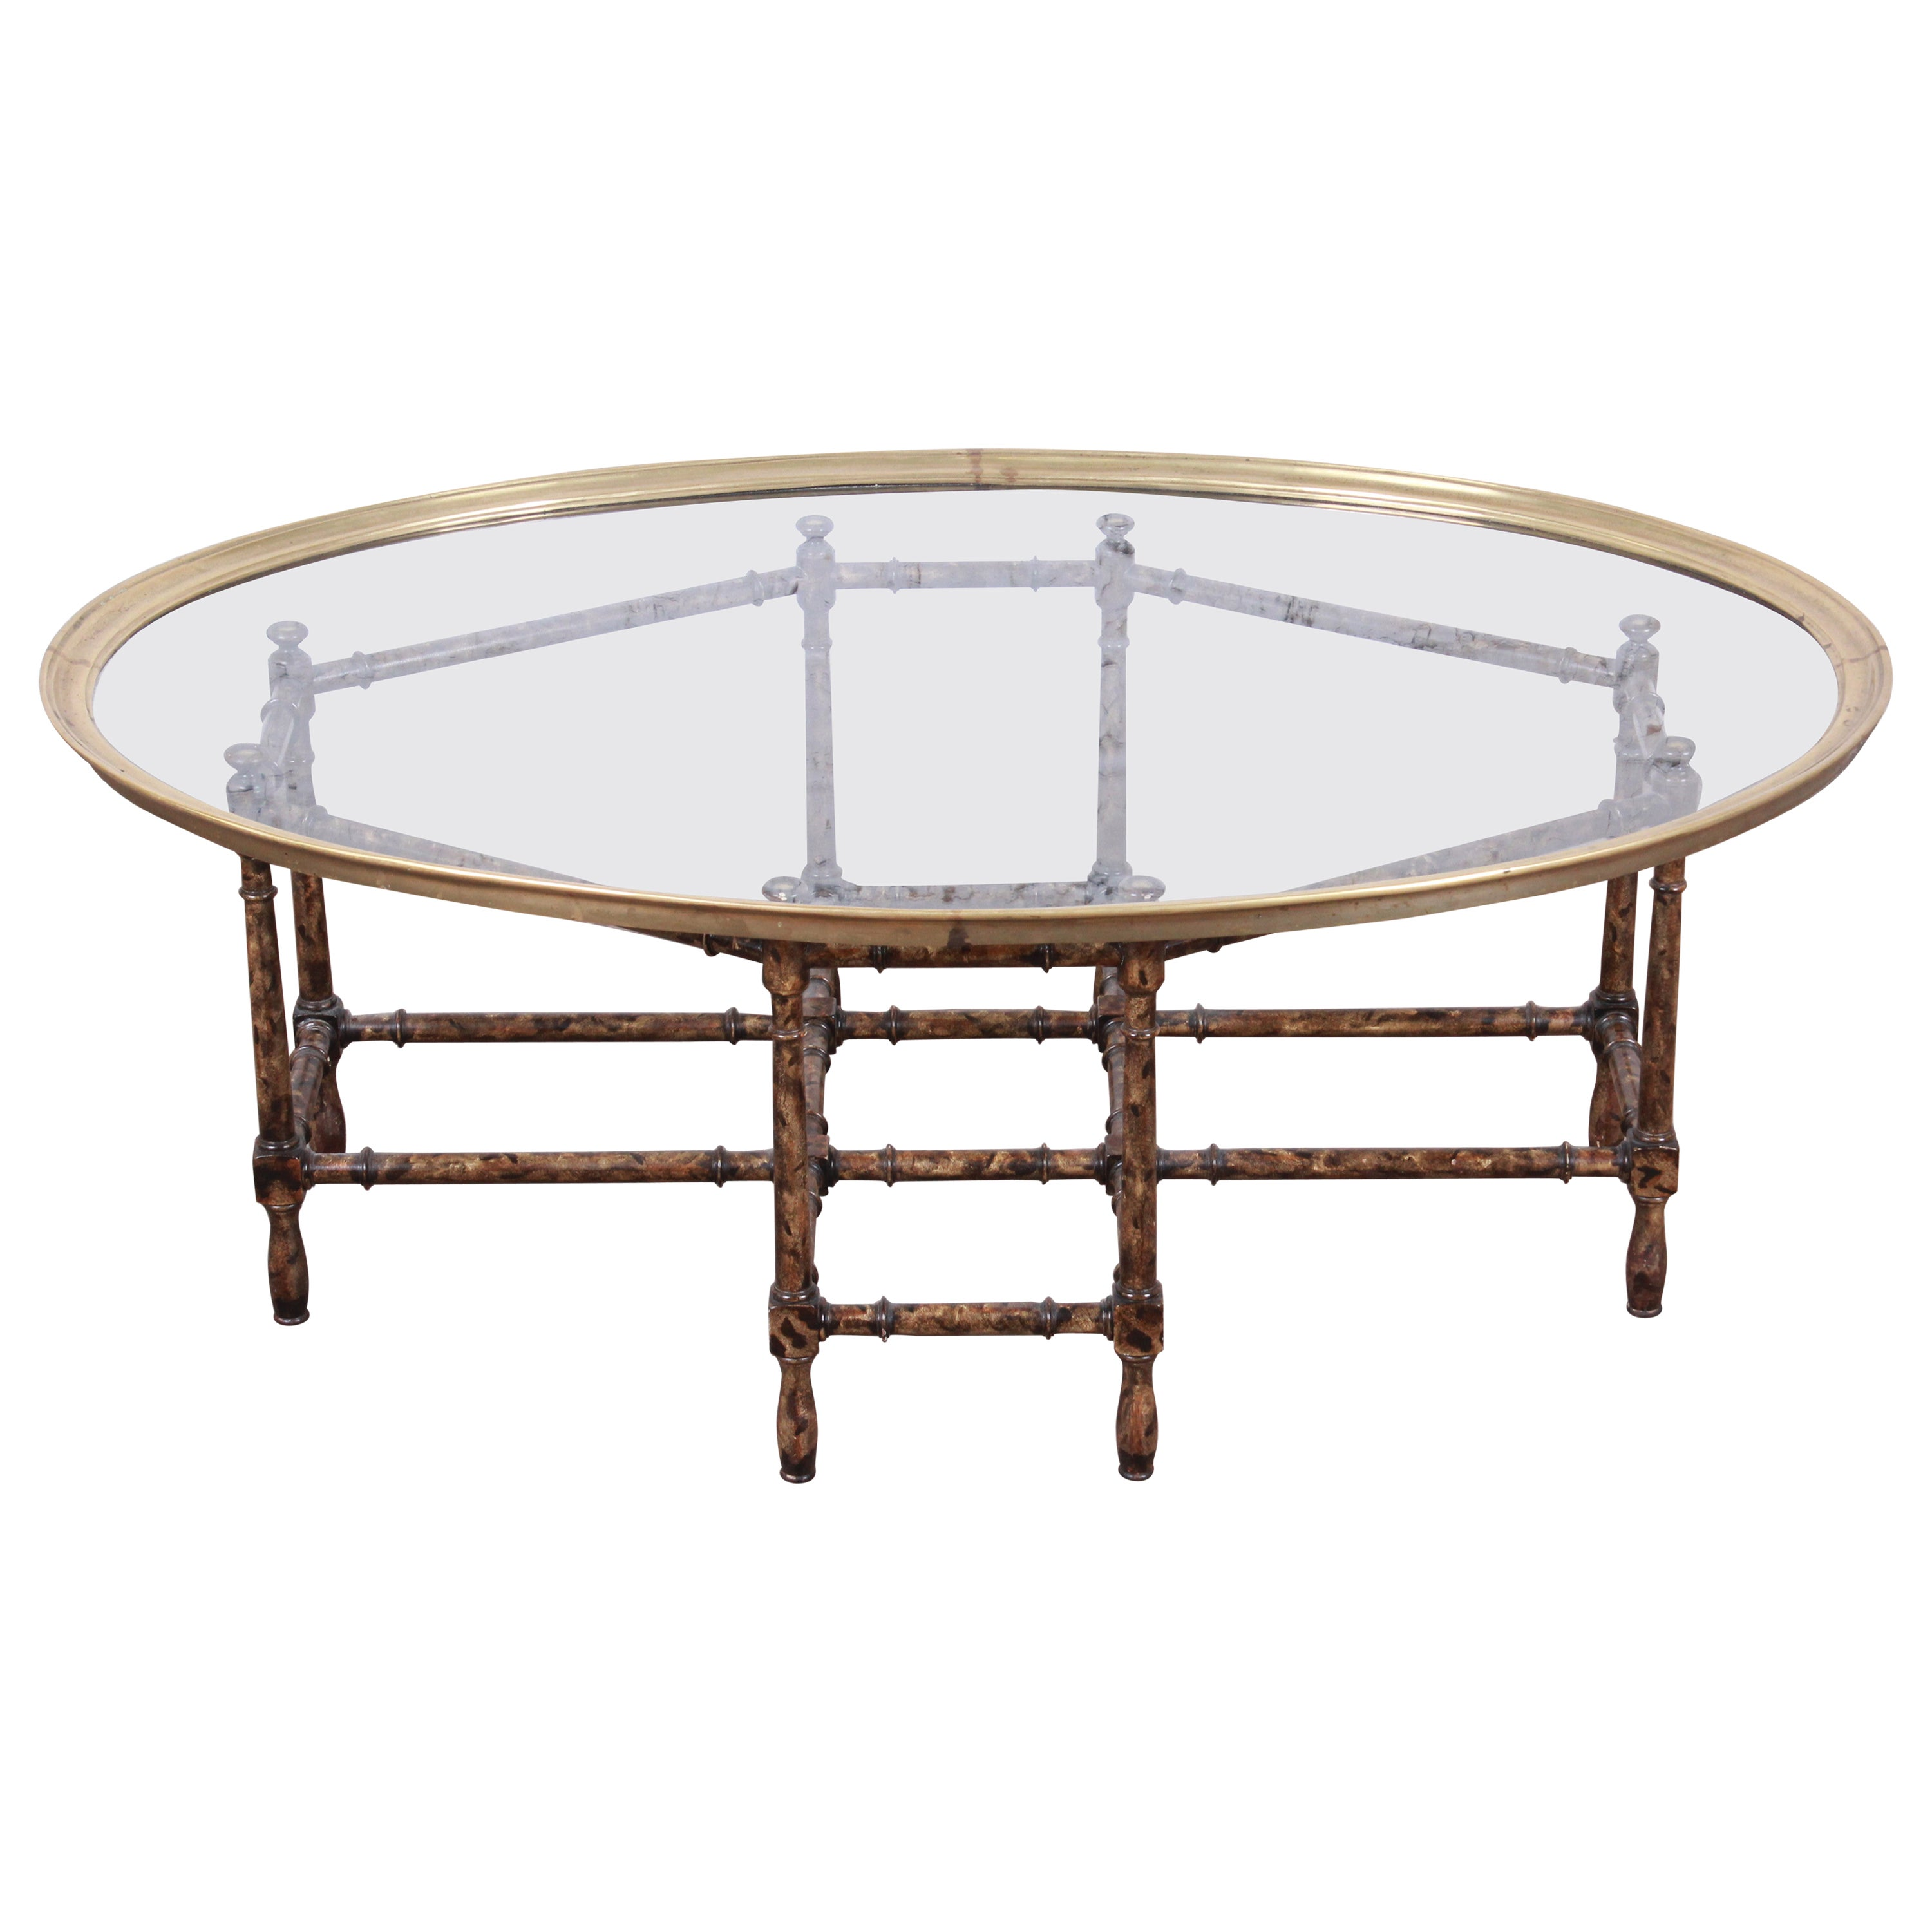 Baker Furniture Hollywood Regency Chinoiserie Faux Bamboo Cocktail Table, 1970s